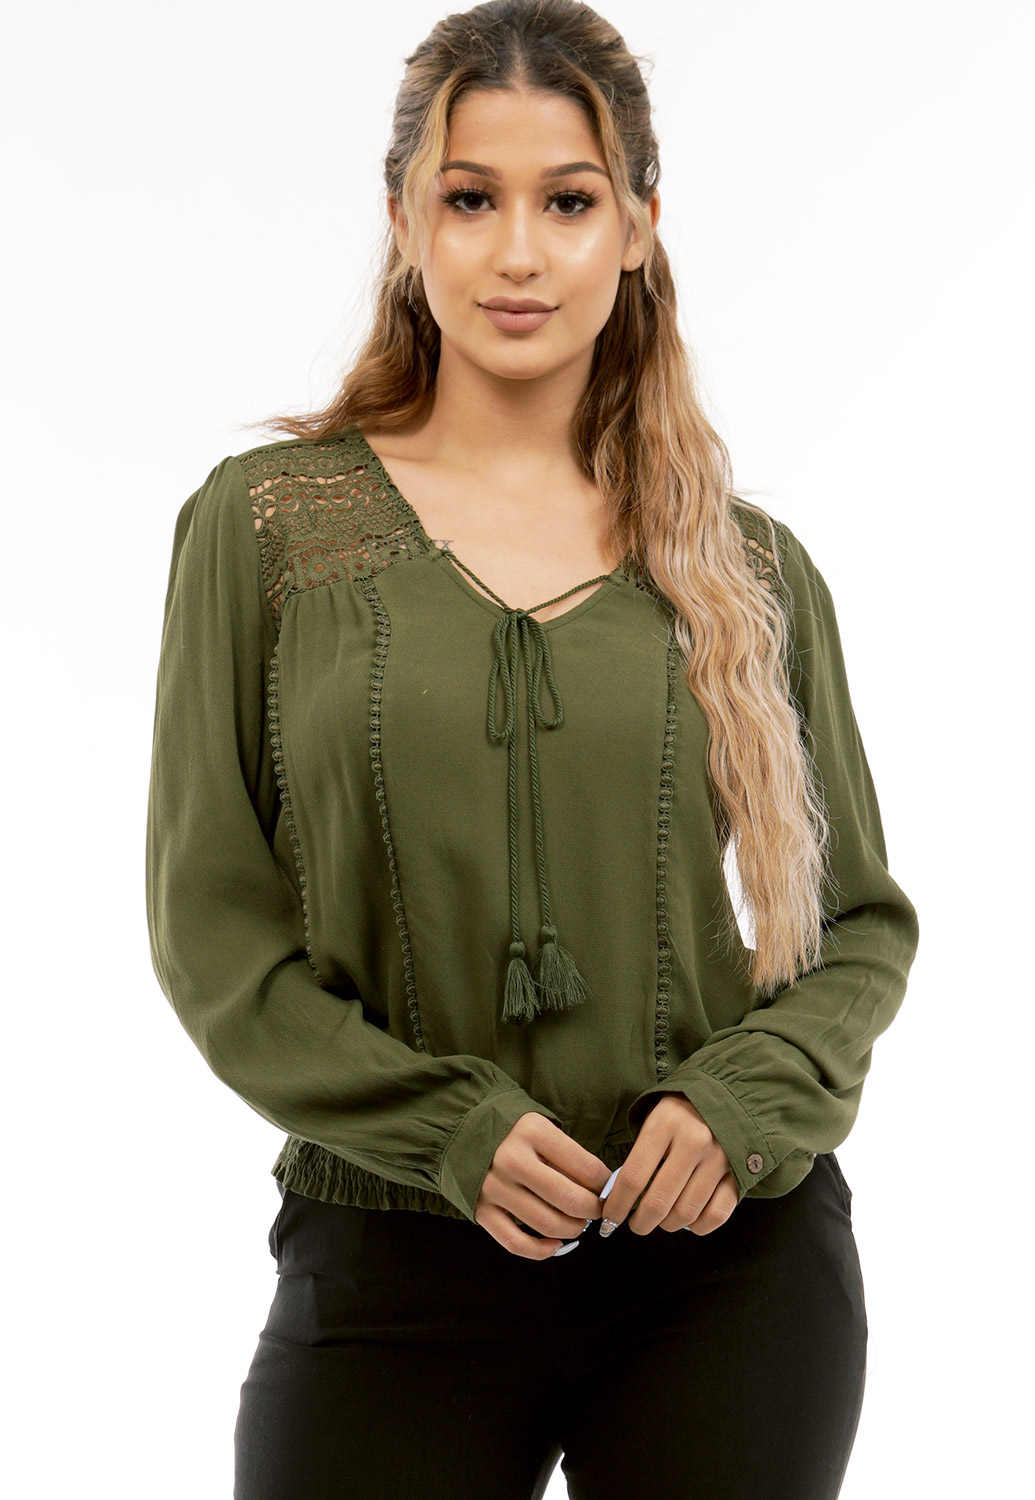 Waist Hugging Blouse